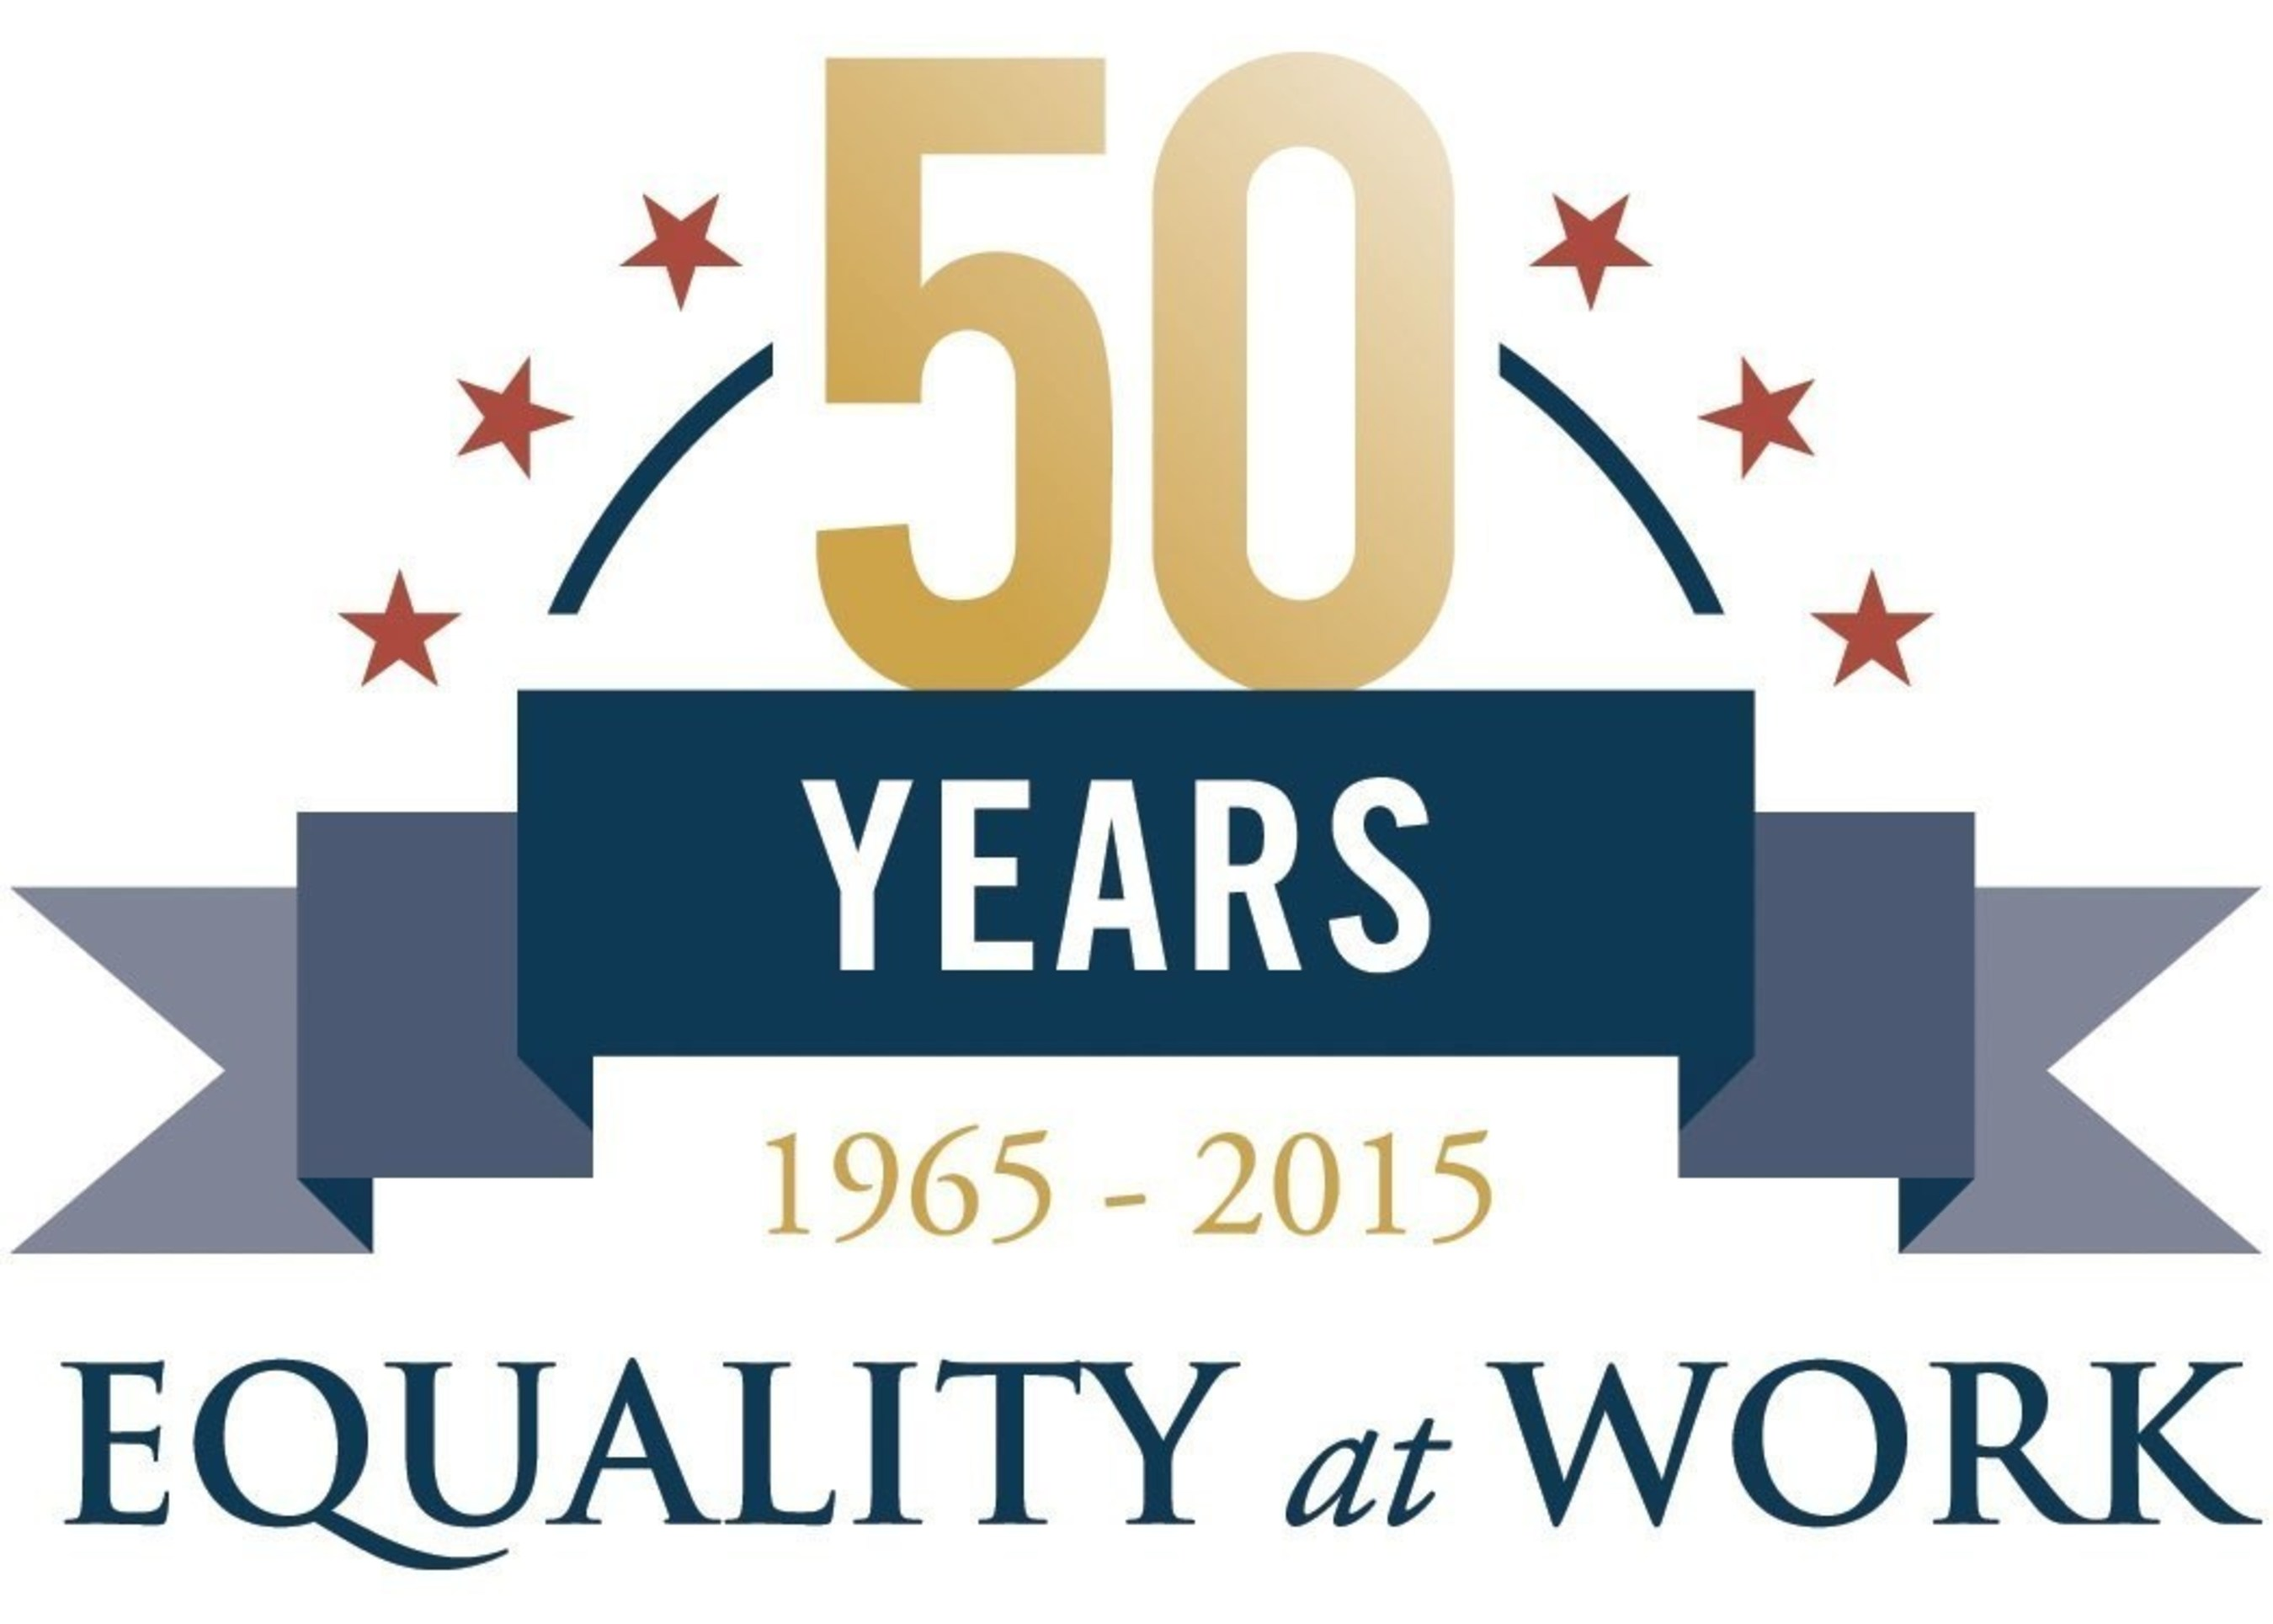 50 Years Equality at Work